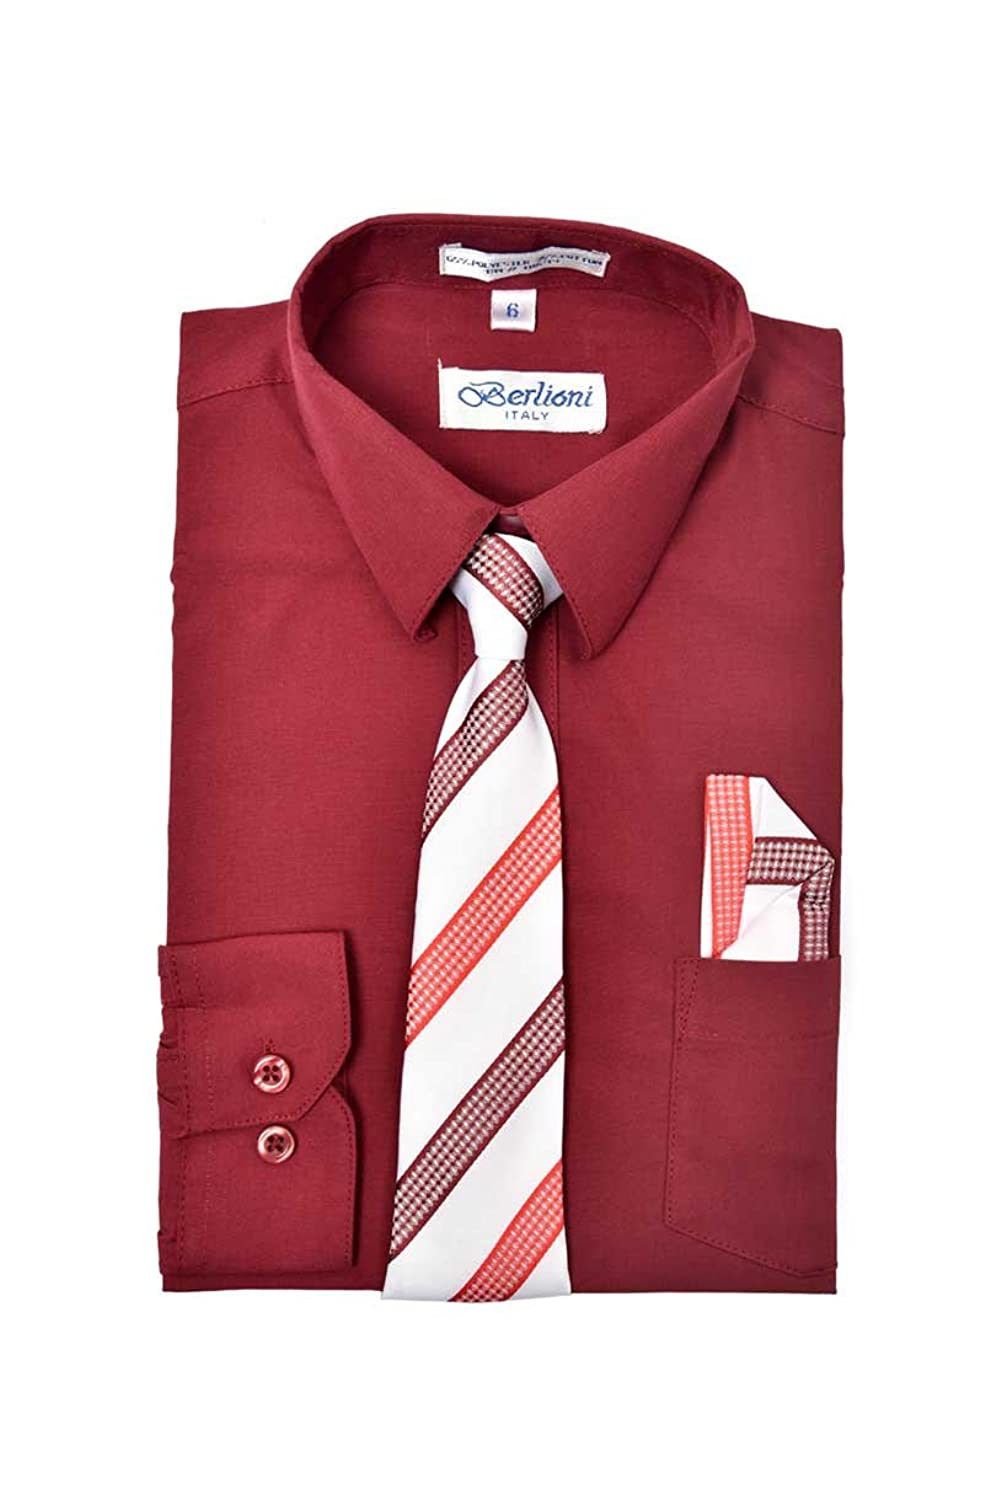 bedf774d5347 Light and Cool Material Machine Wash Does not shrink, color does not fade  away after wash. Please note the ties and pocket squares ...